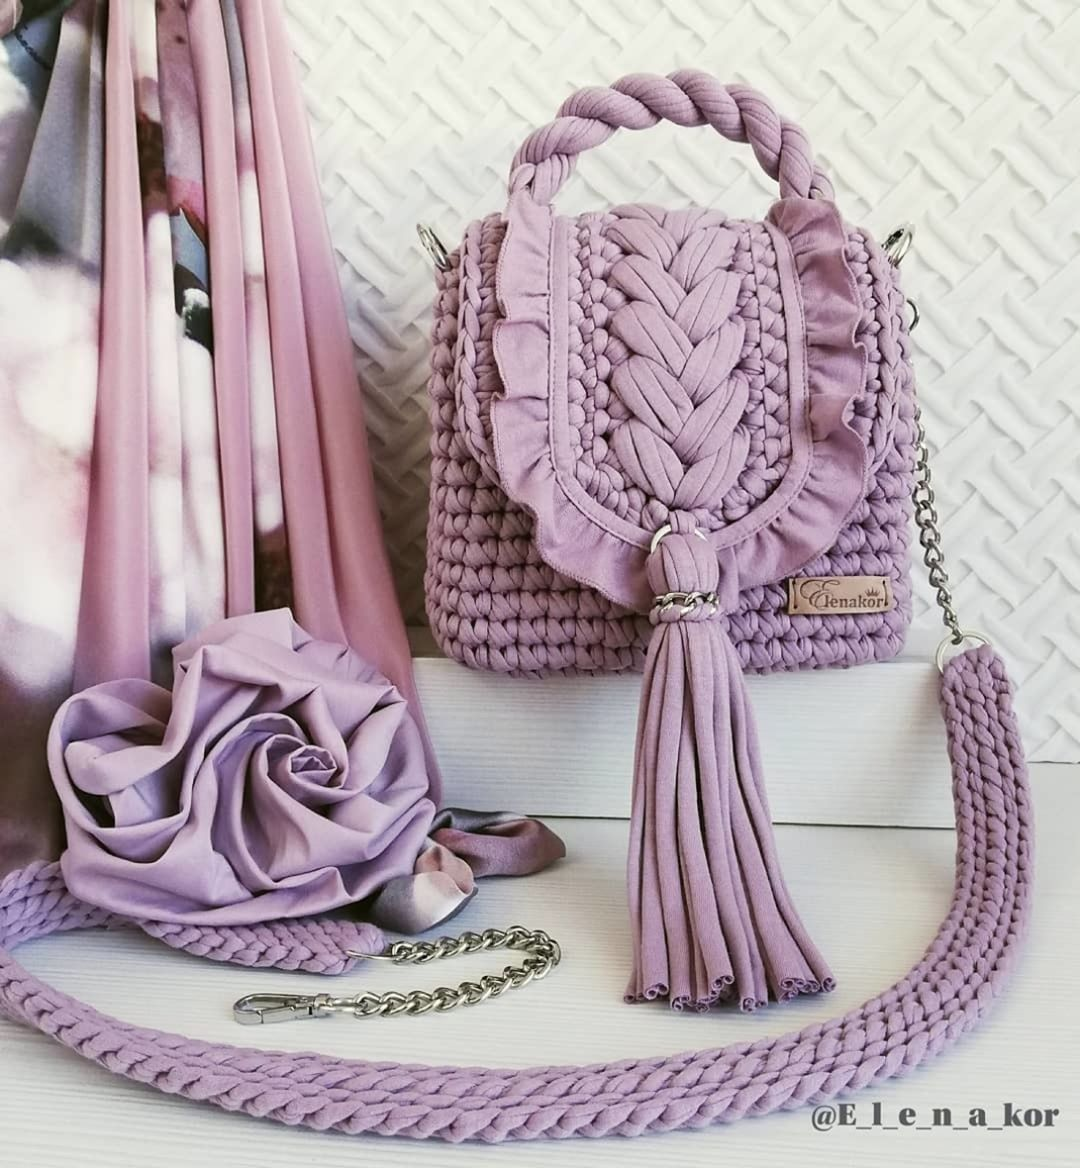 Crochet Bag Pattern Is A Stunner – Page 9 of 24